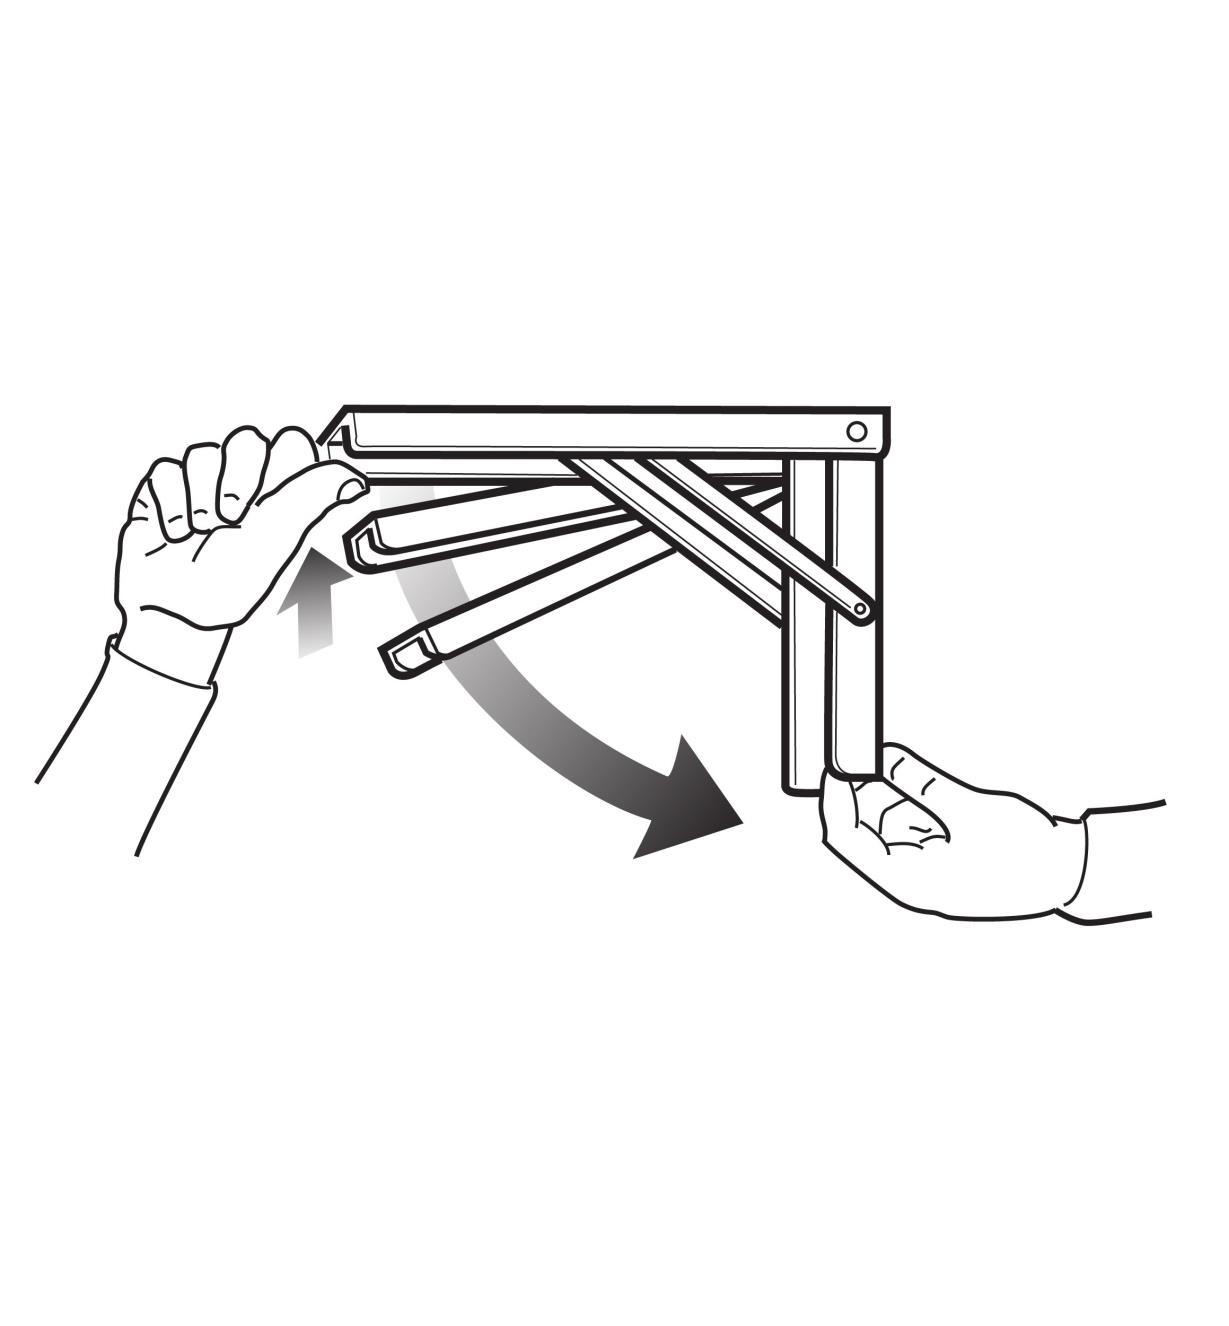 Illustration demonstrates how the bracket can be set at three different angles or closed